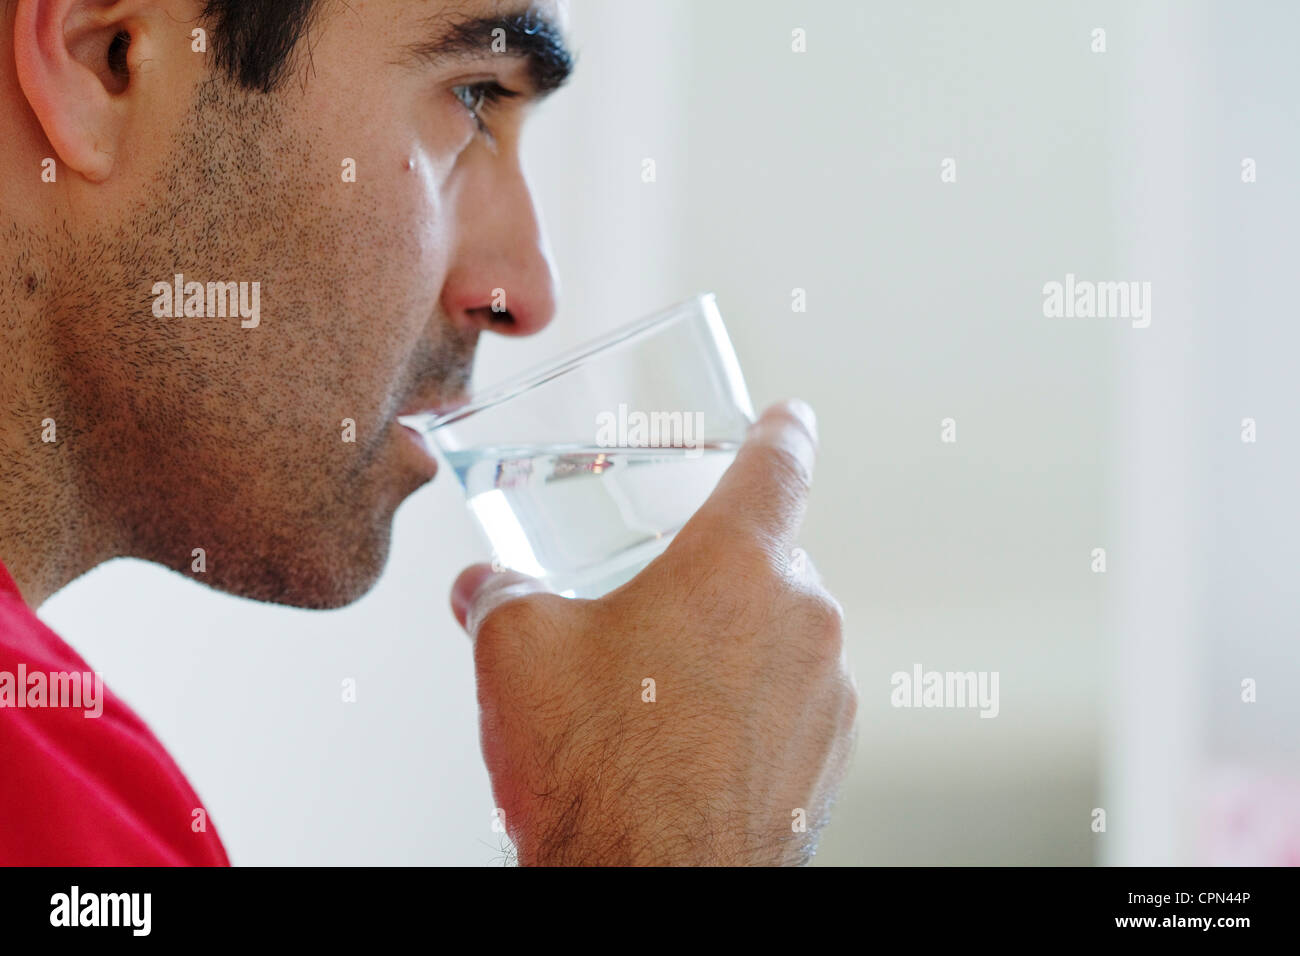 MAN WITH COLD DRINK - Stock Image